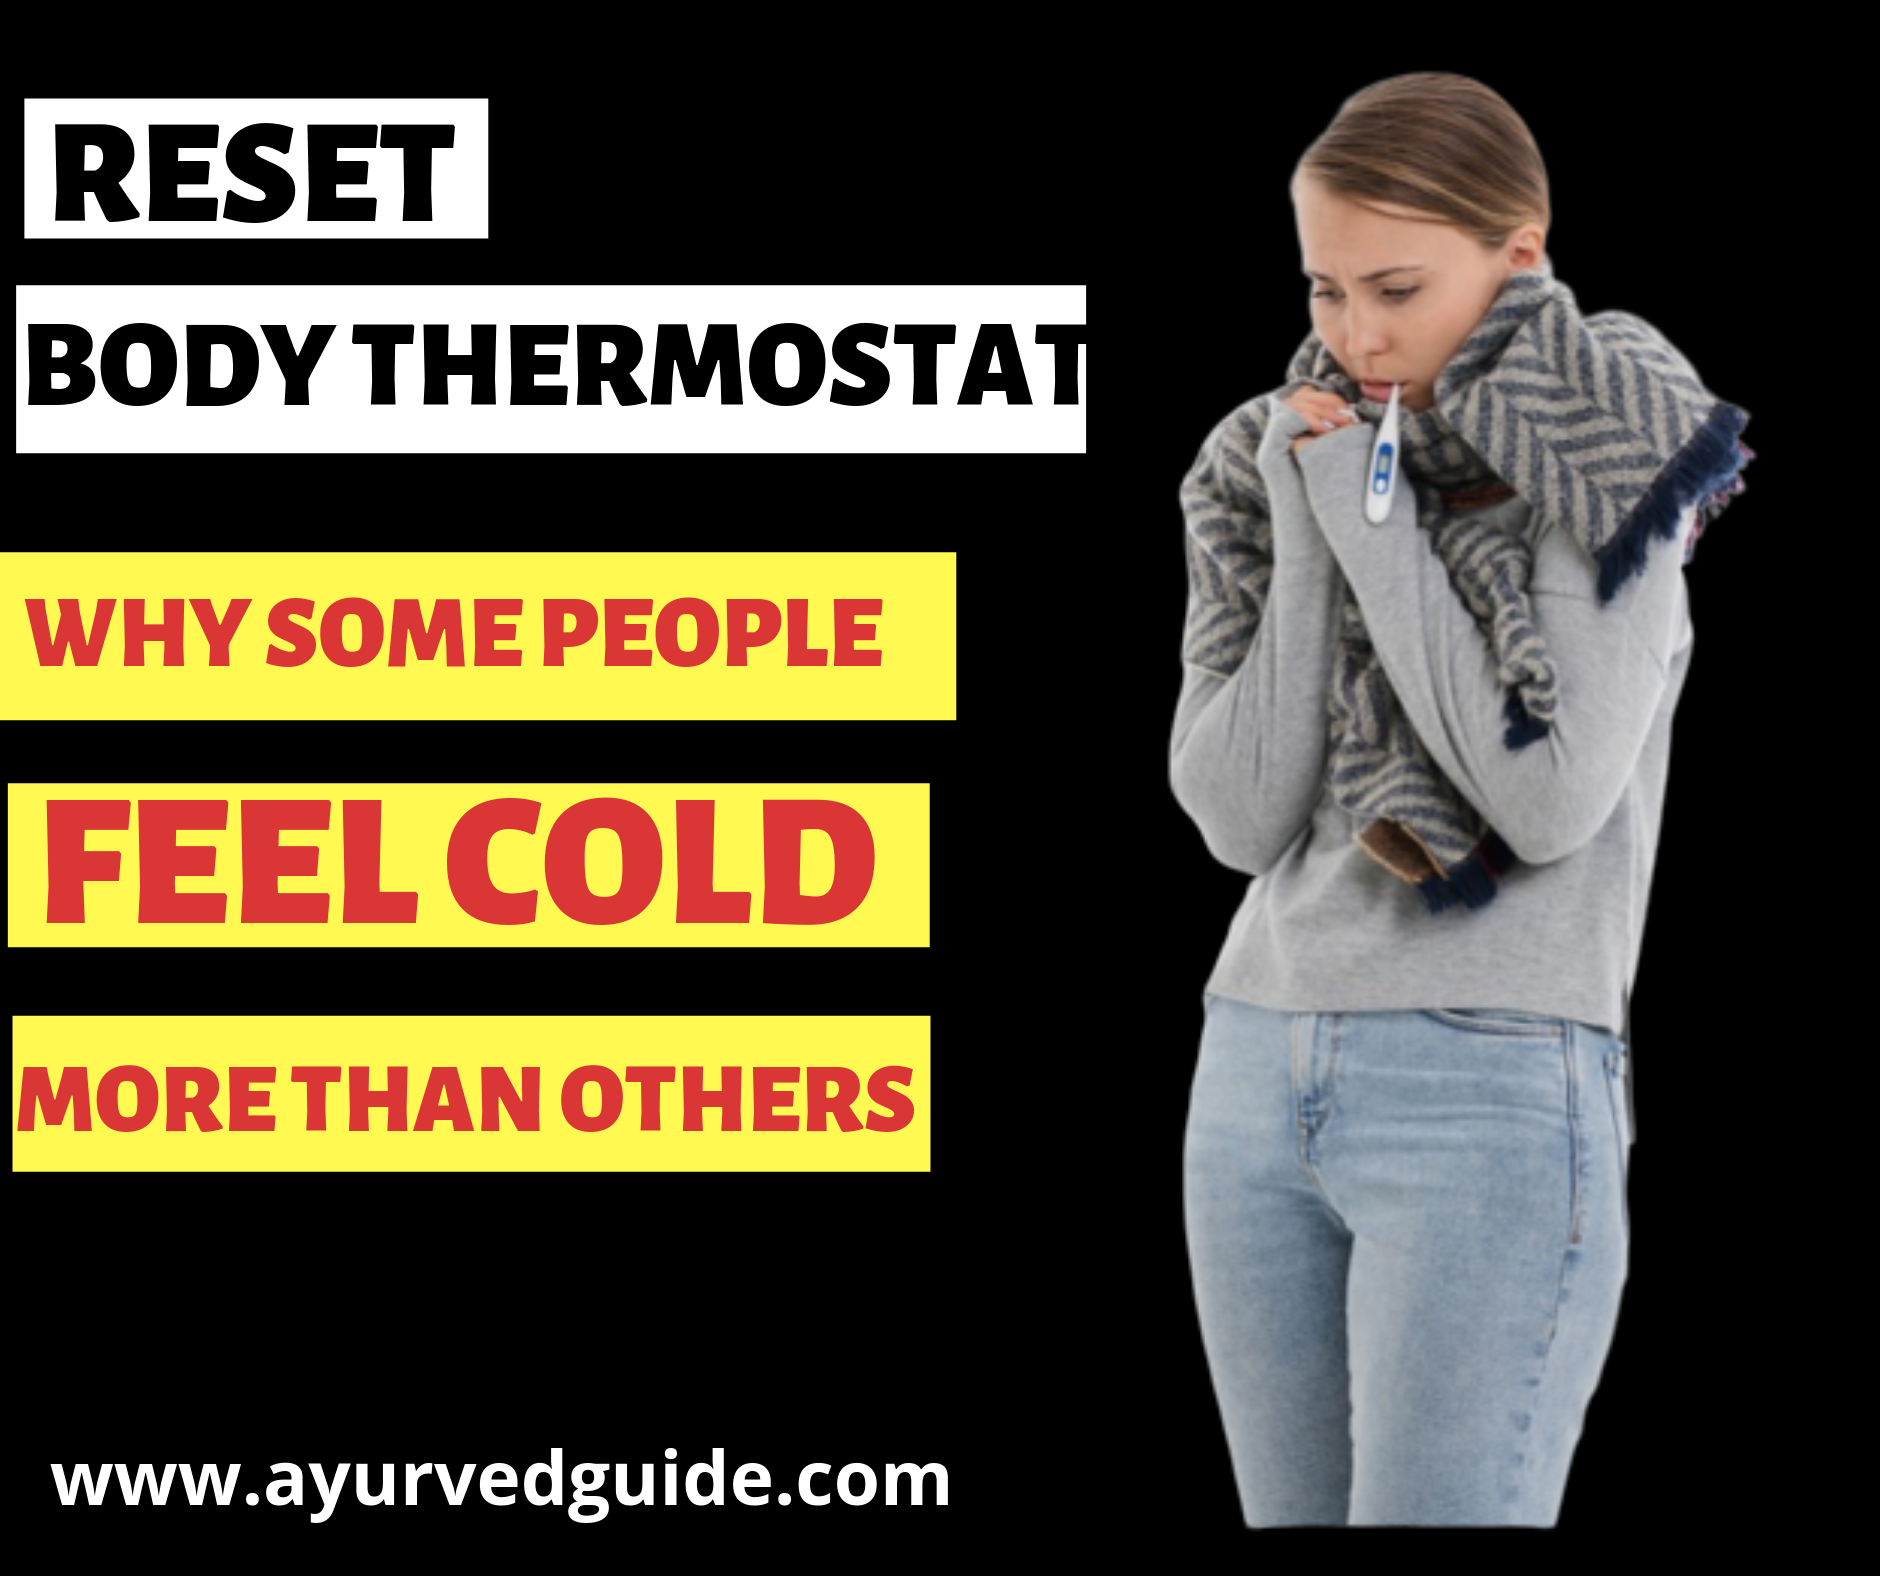 Reset Body Thermostat Why Some People Feel Cold More